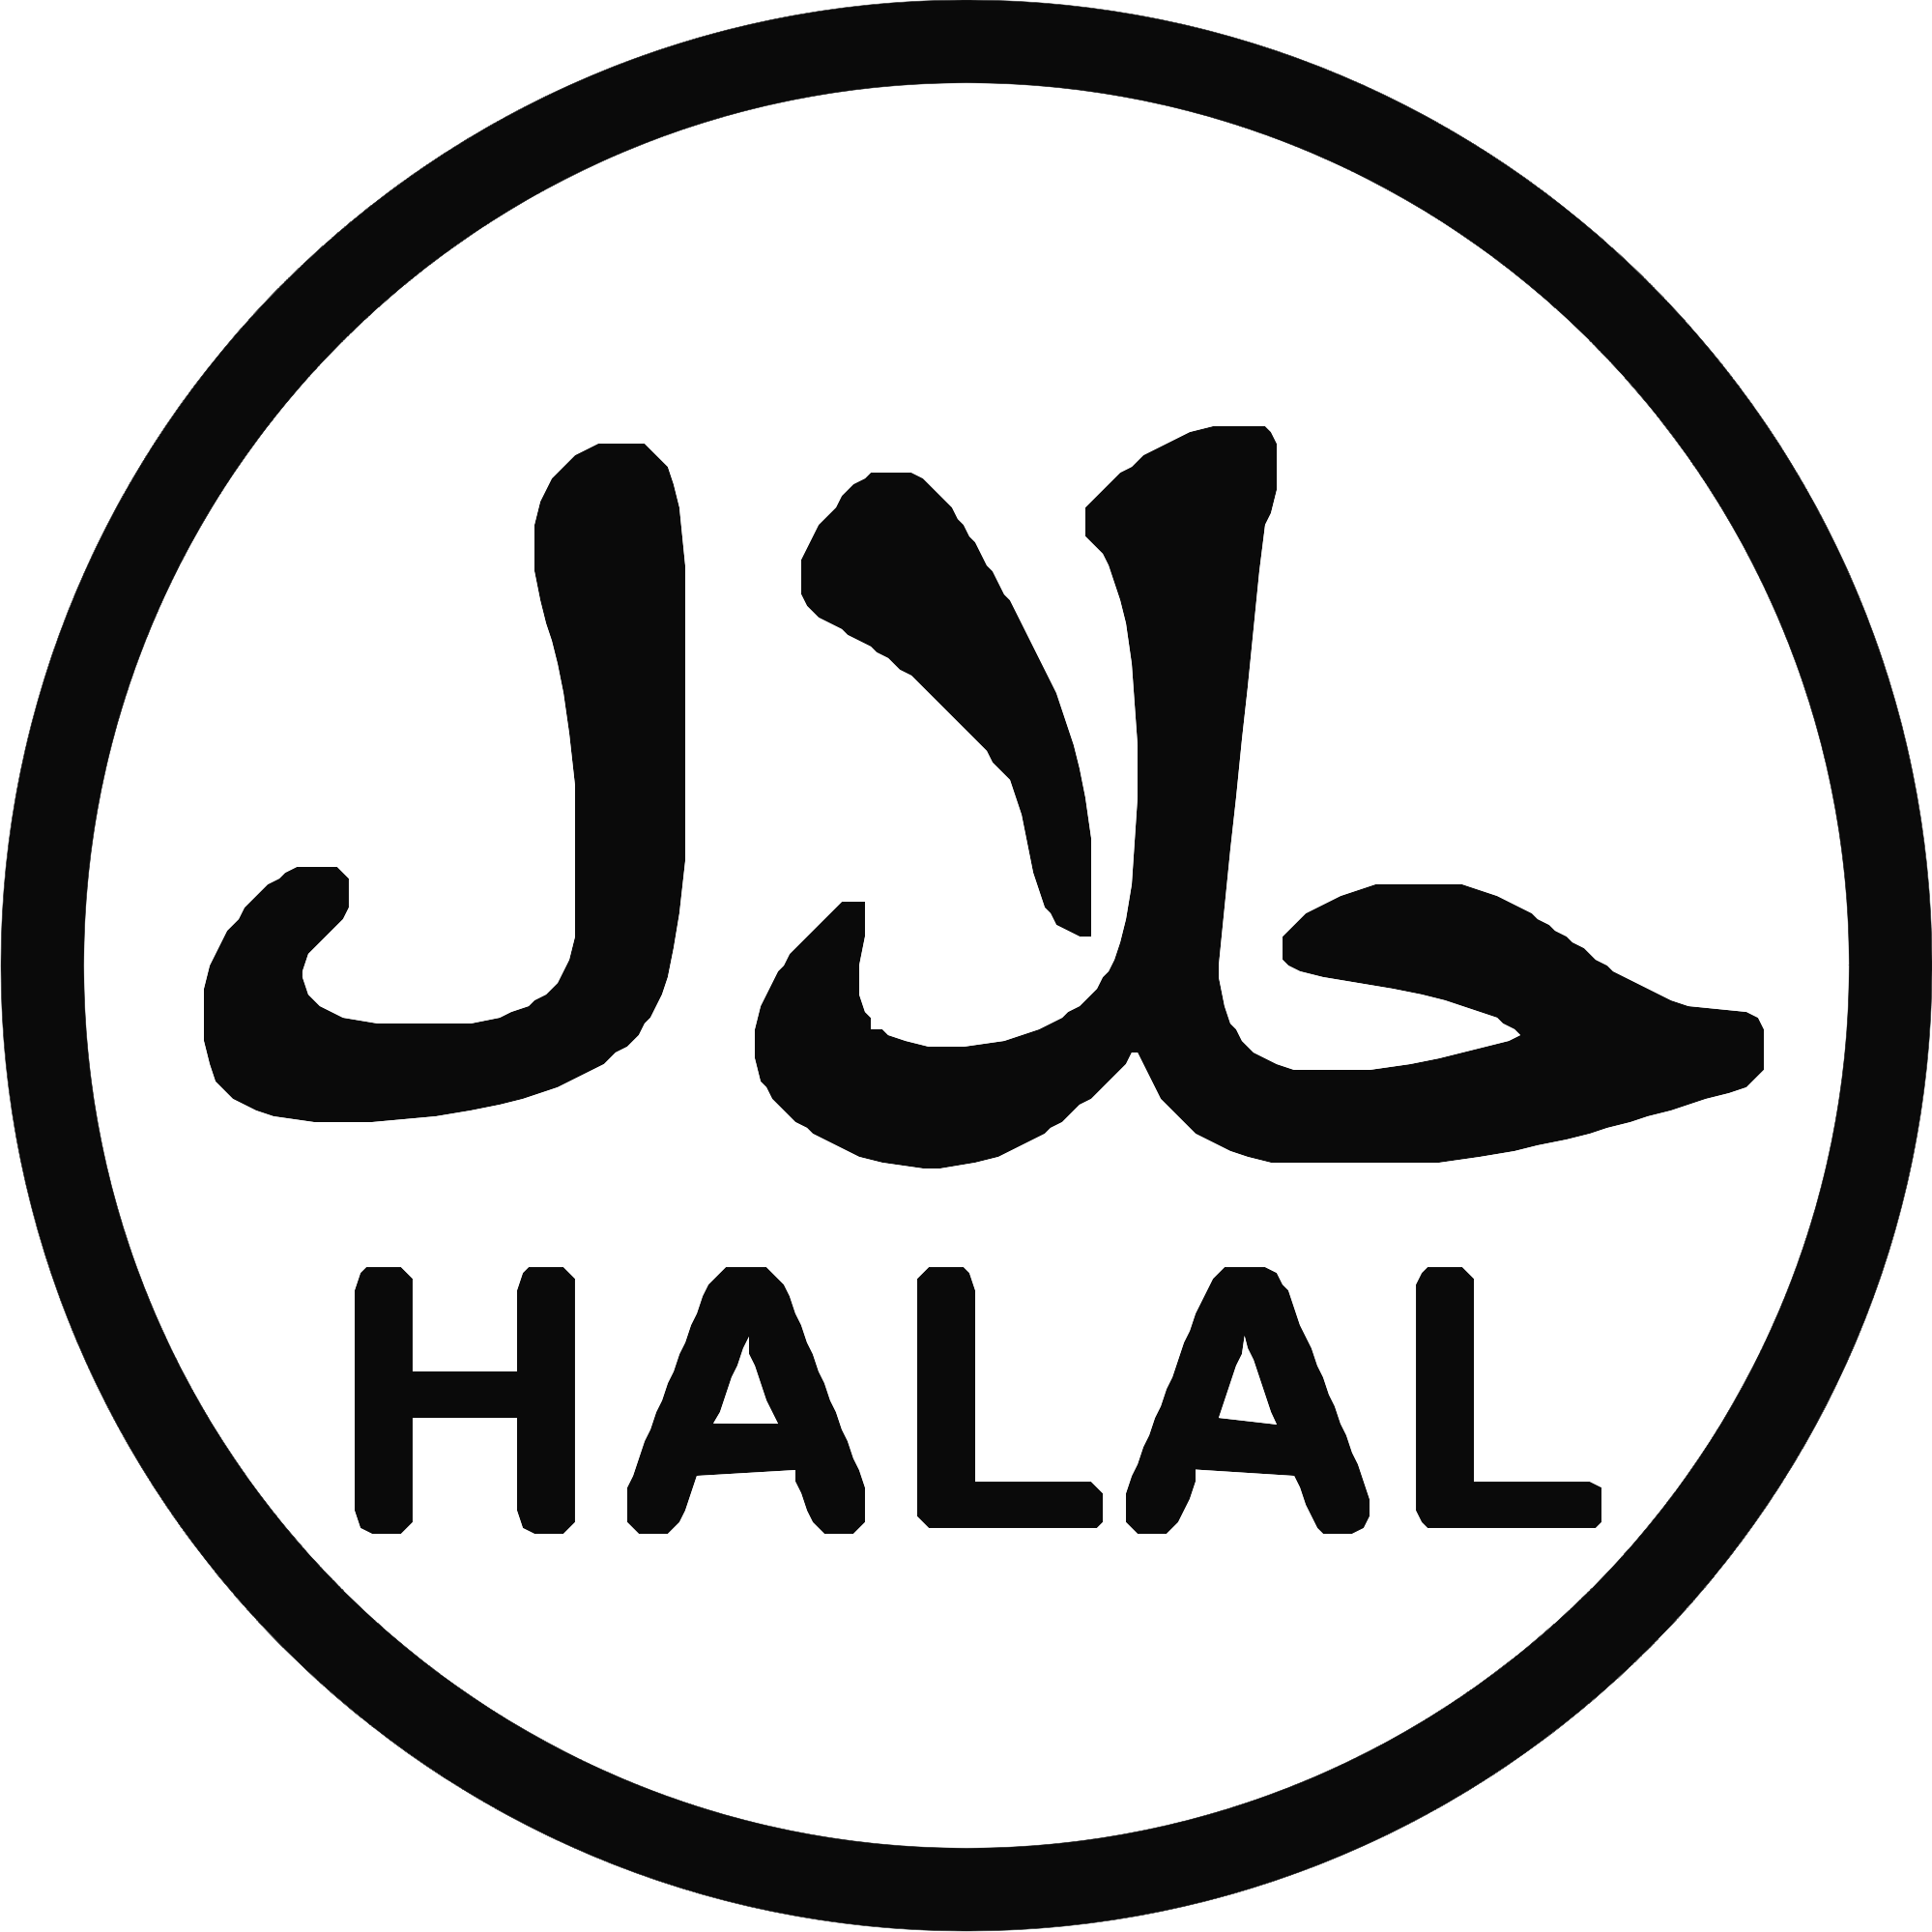 HALAL Logo Wallpaper